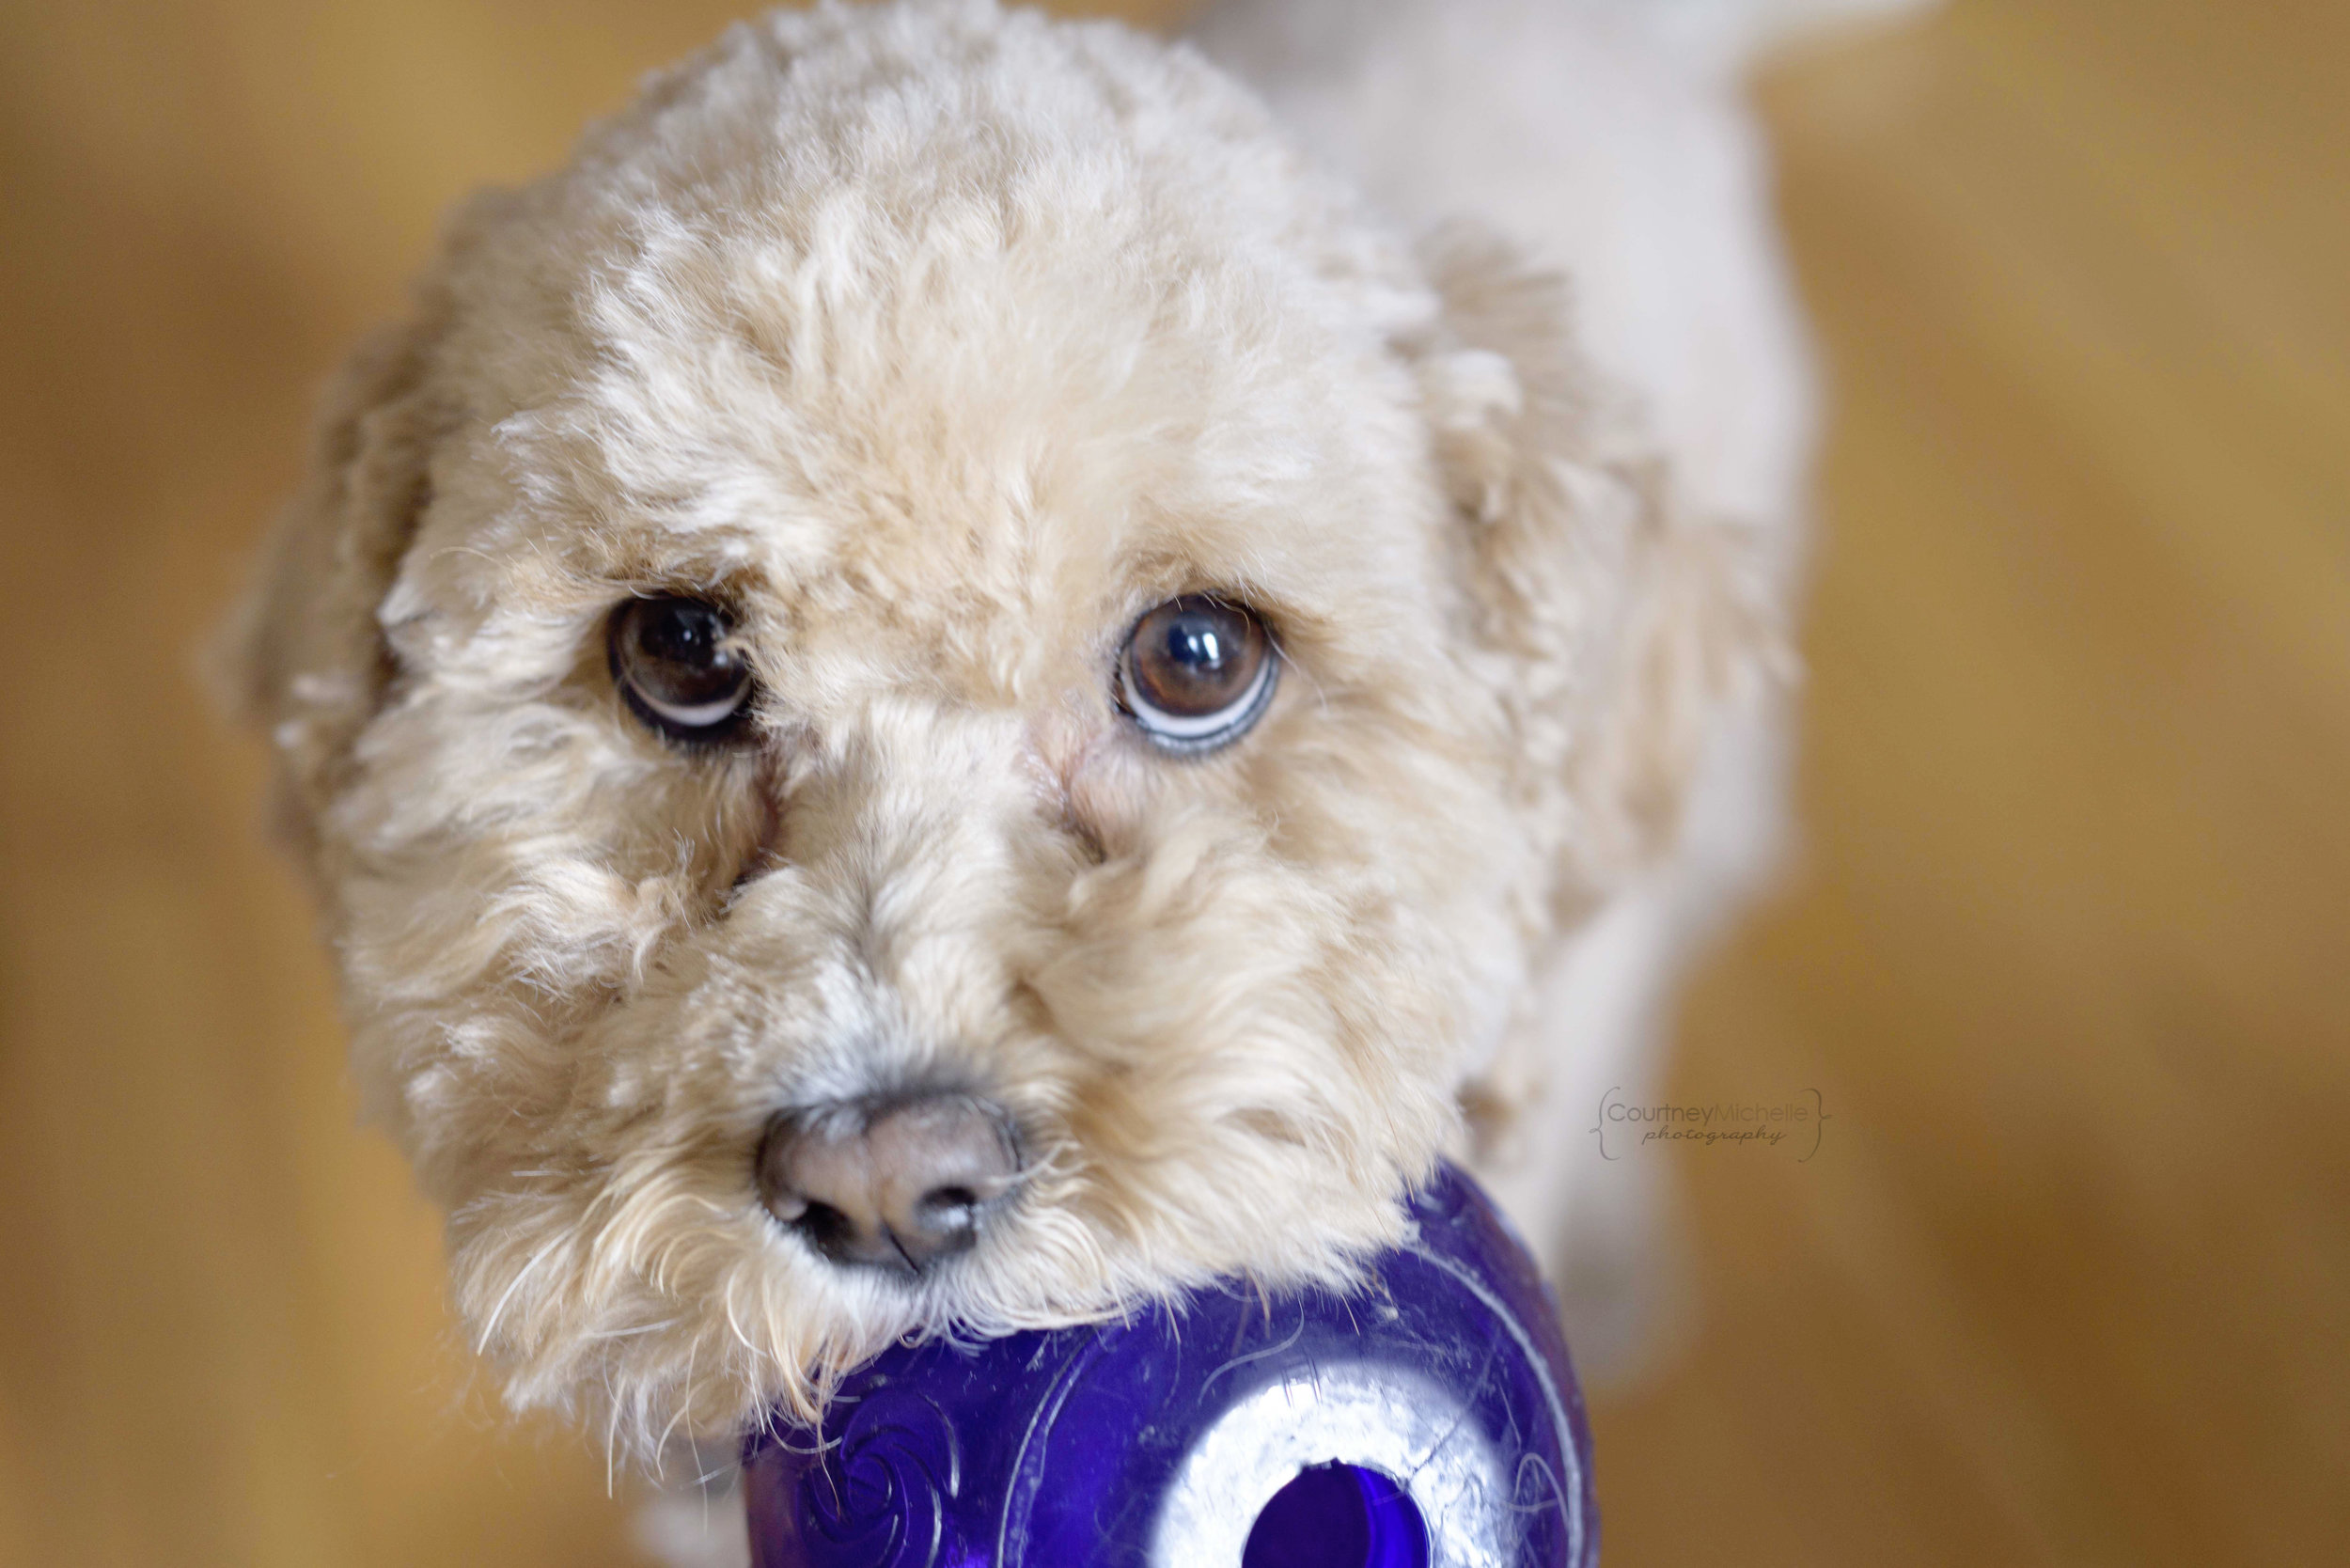 dog_with_ball_chicago_pet_photography_by_Courtney_Laper©COPYRIGHTCMP-0741.jpg